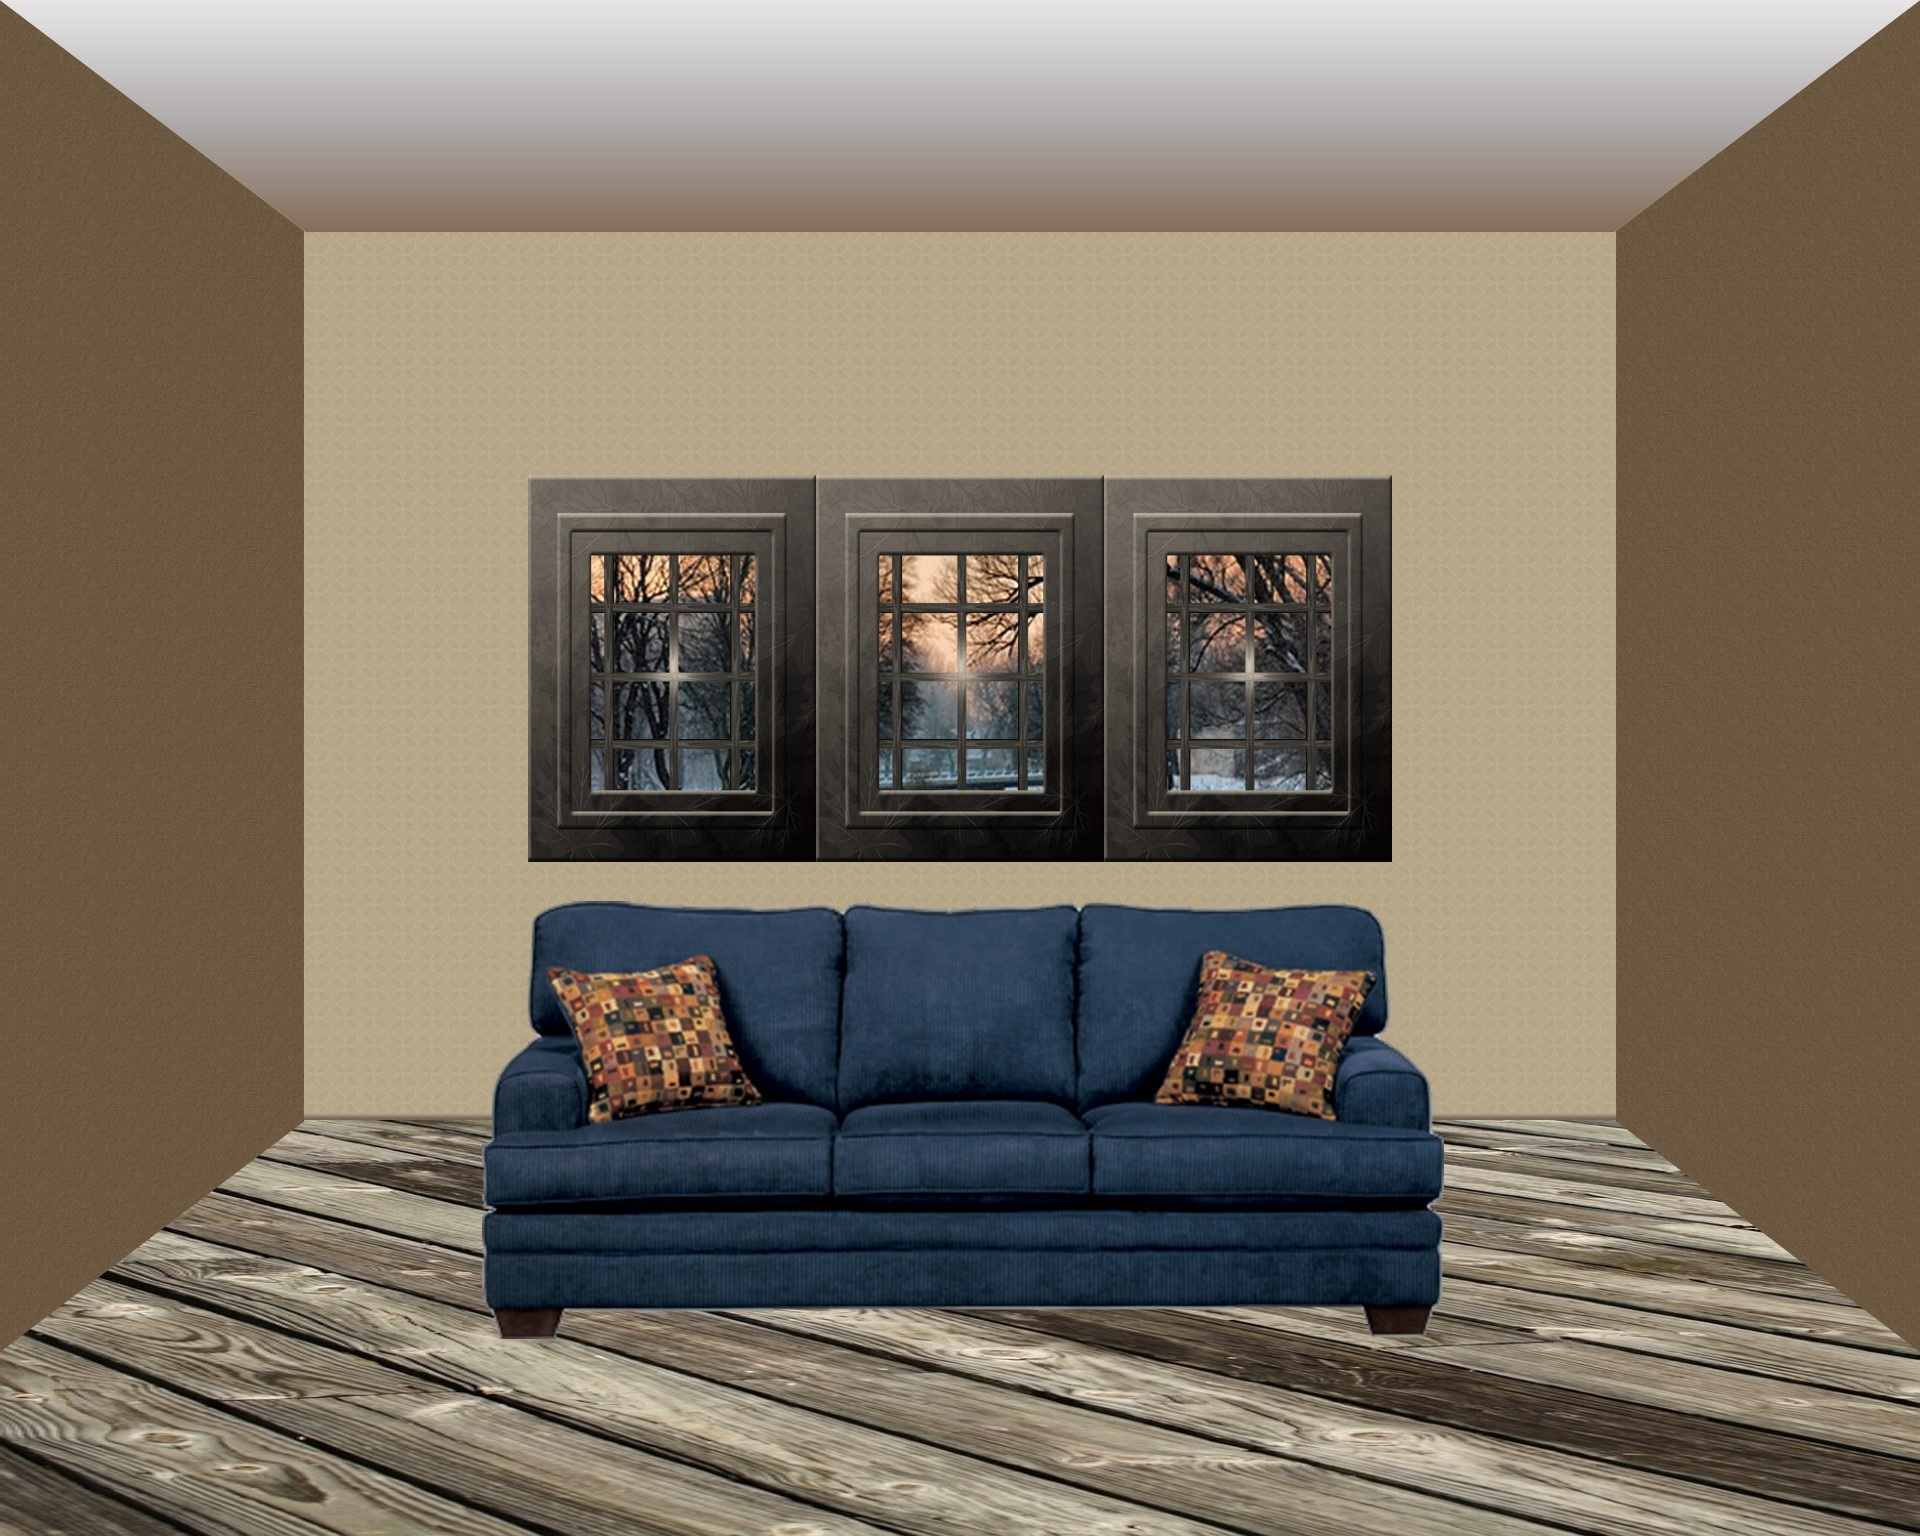 Free images room interior background living for Room interior images